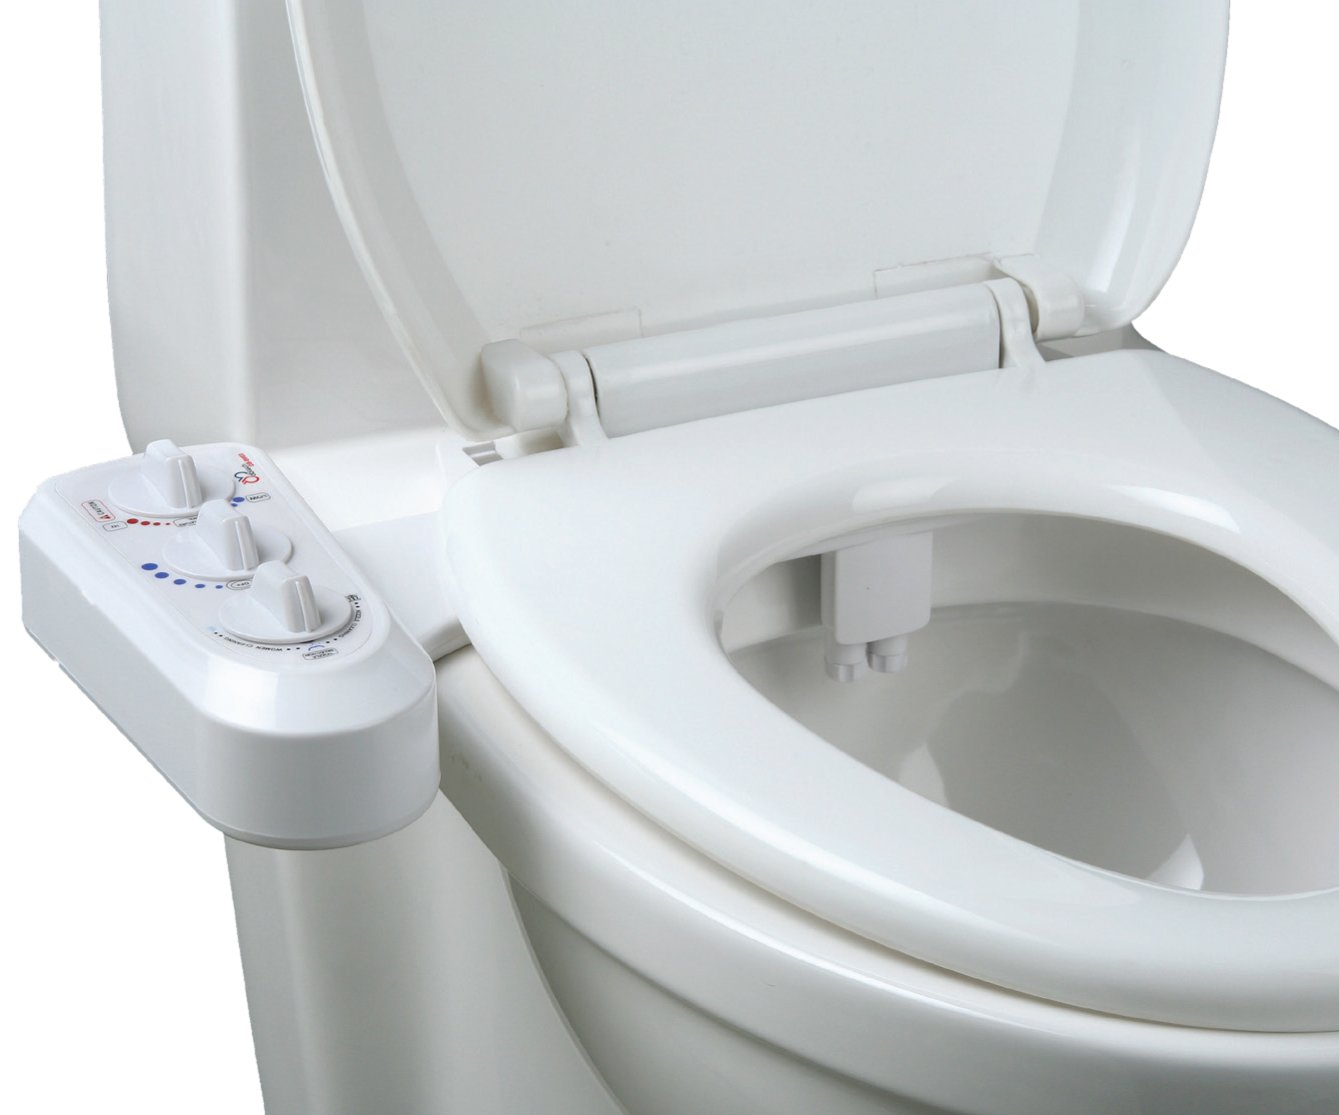 Jumbl BI-003 Self Cleaning Hot and Cold Water Bidet - Dual Nozzle (Male & Female) - Non-Electric Mechanical Bidet Toilet Attachment - With Adjustable Water Pressure and Temperature